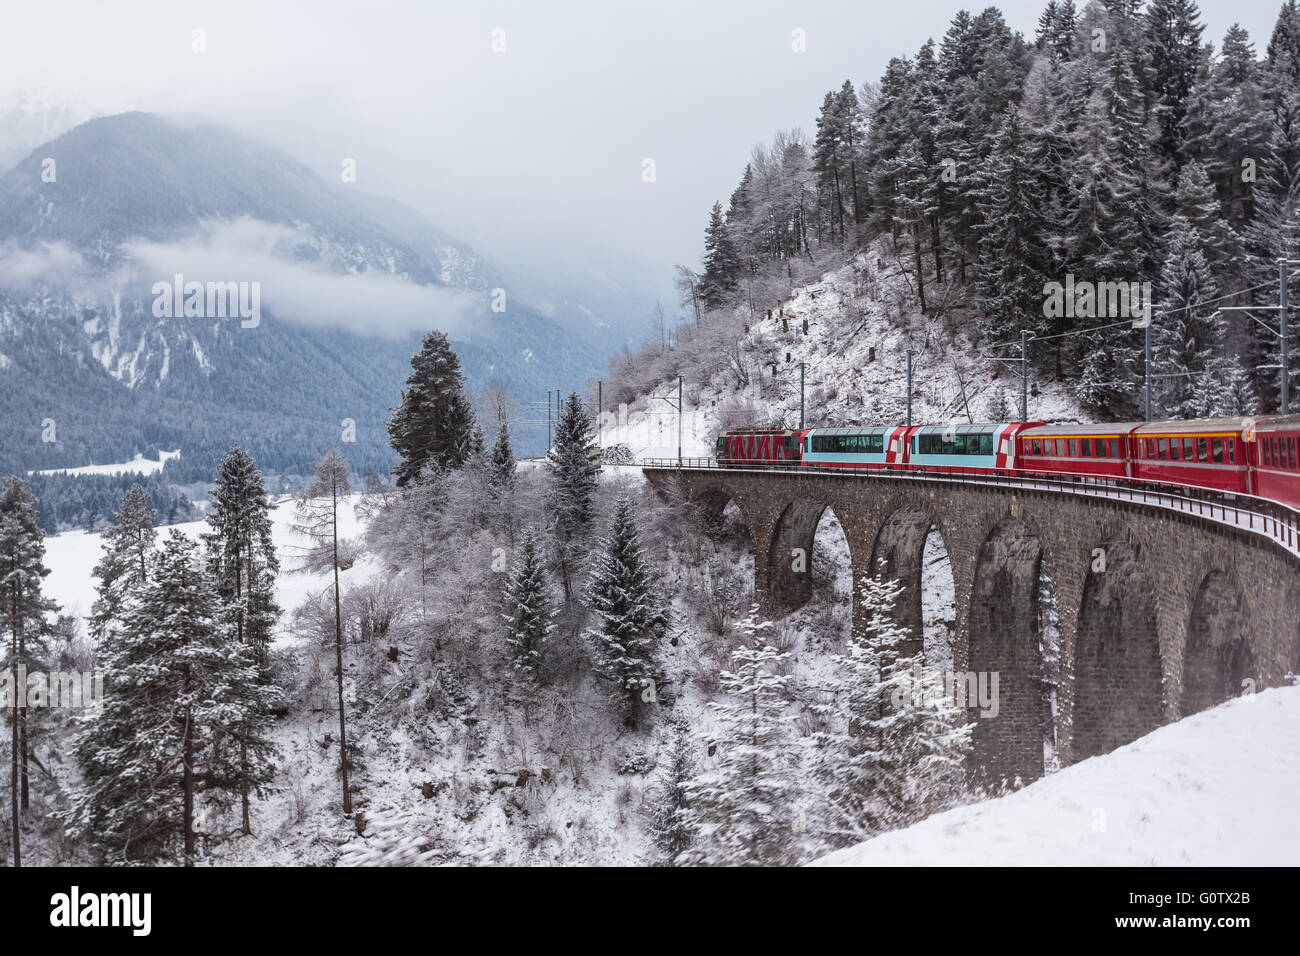 Famous sightseeing train running over viaduct in Switzerland, the Glacier Express in winter - Stock Image